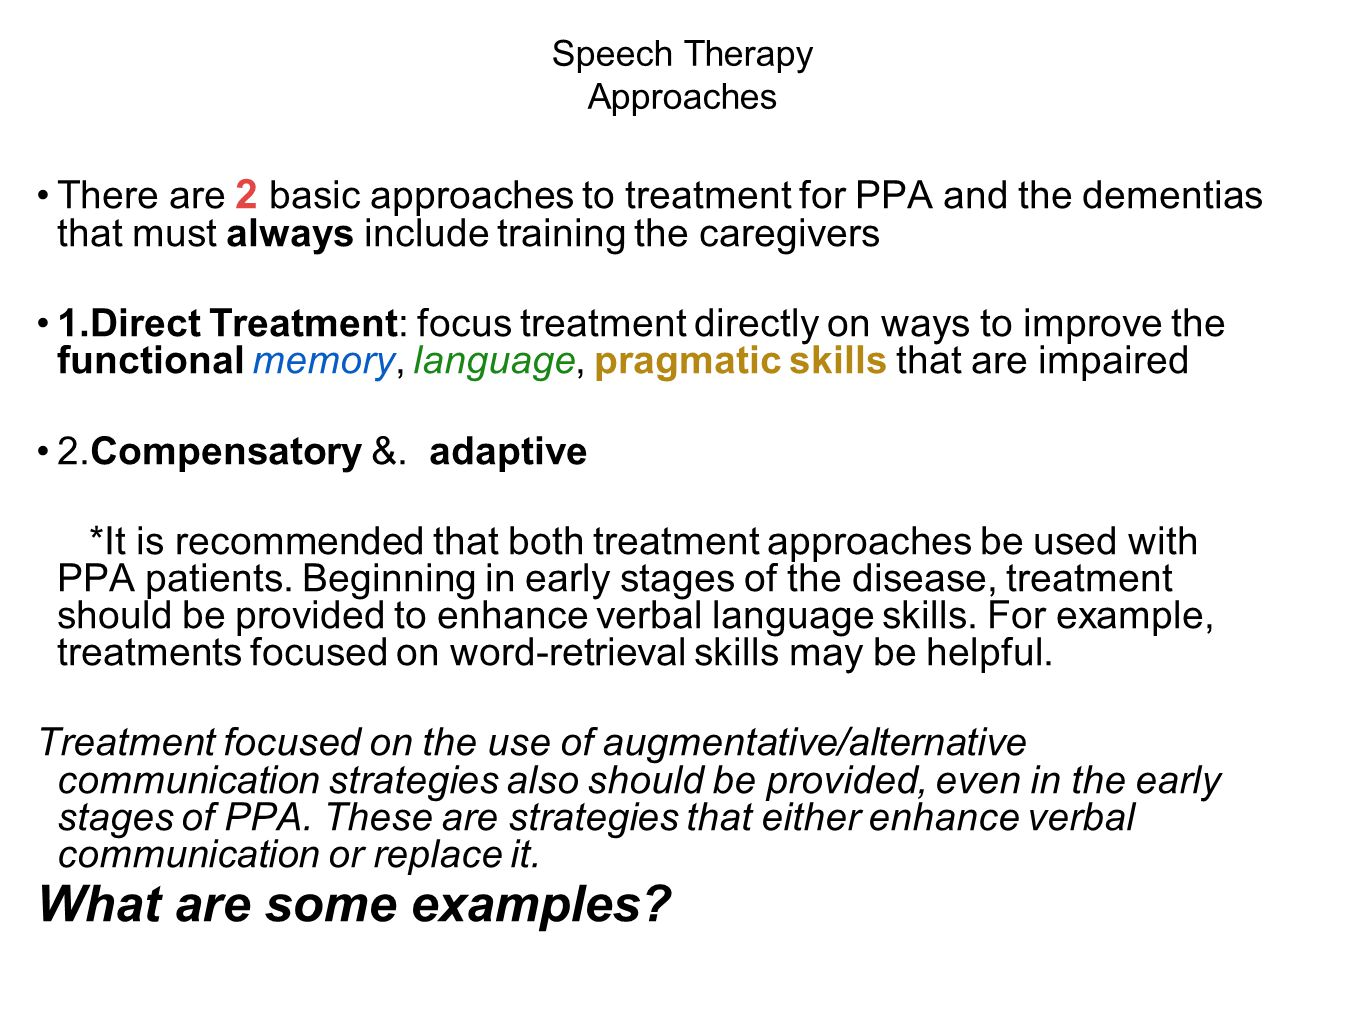 Speech Therapy Approaches There are 2 basic approaches to treatment for PPA and the dementias that must always include training the caregivers 1.Direct Treatment: focus treatment directly on ways to improve the functional memory, language, pragmatic skills that are impaired 2.Compensatory &.